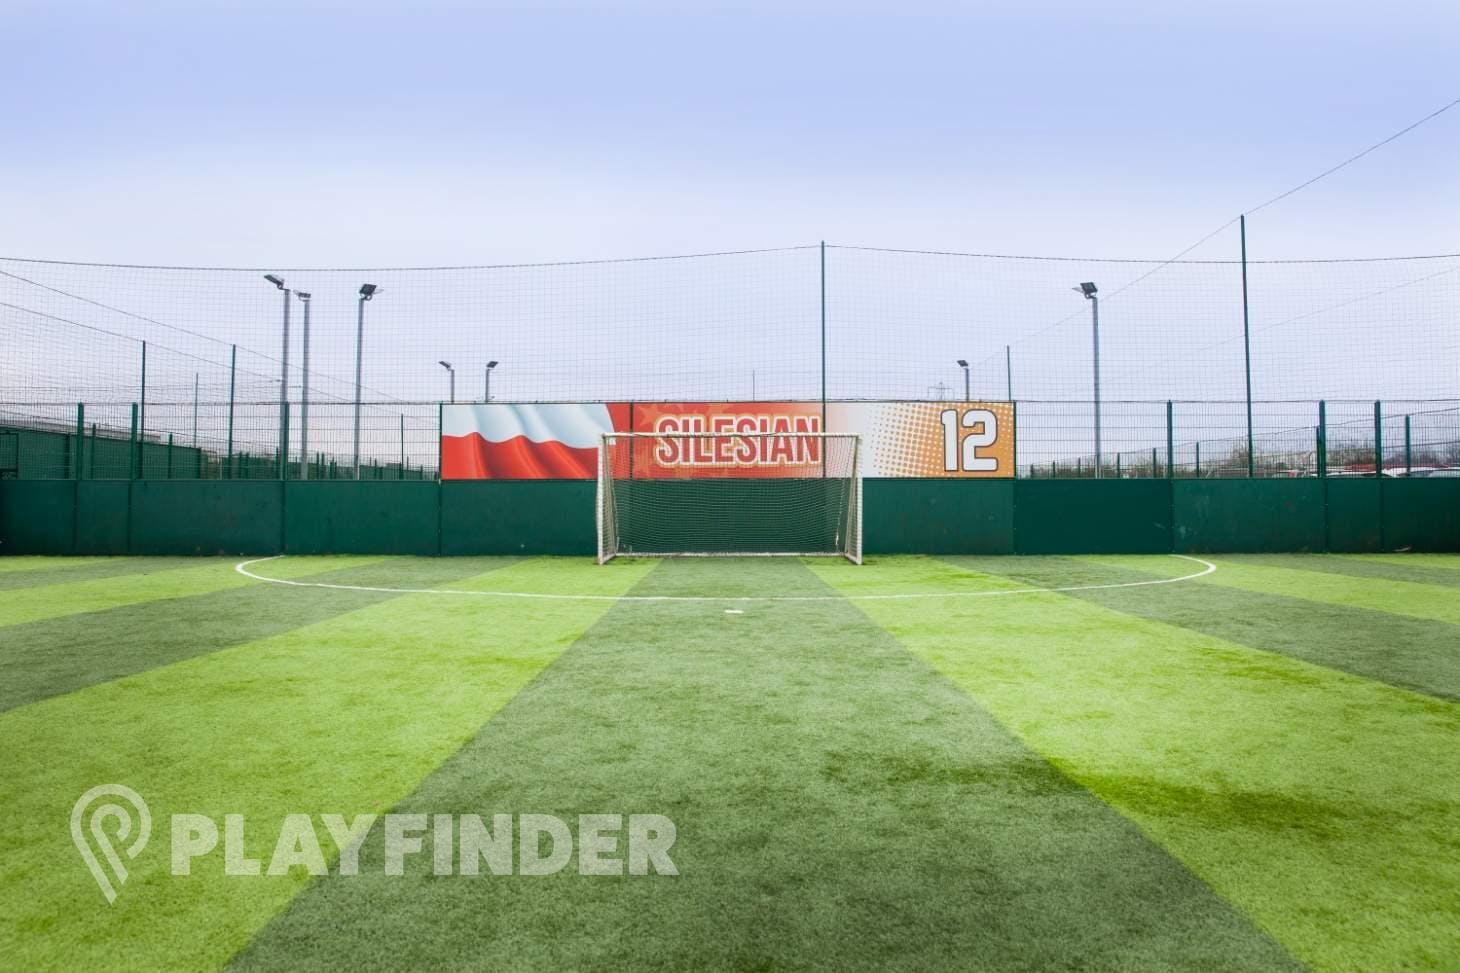 Goals Sunderland 7 a side | 3G Astroturf football pitch